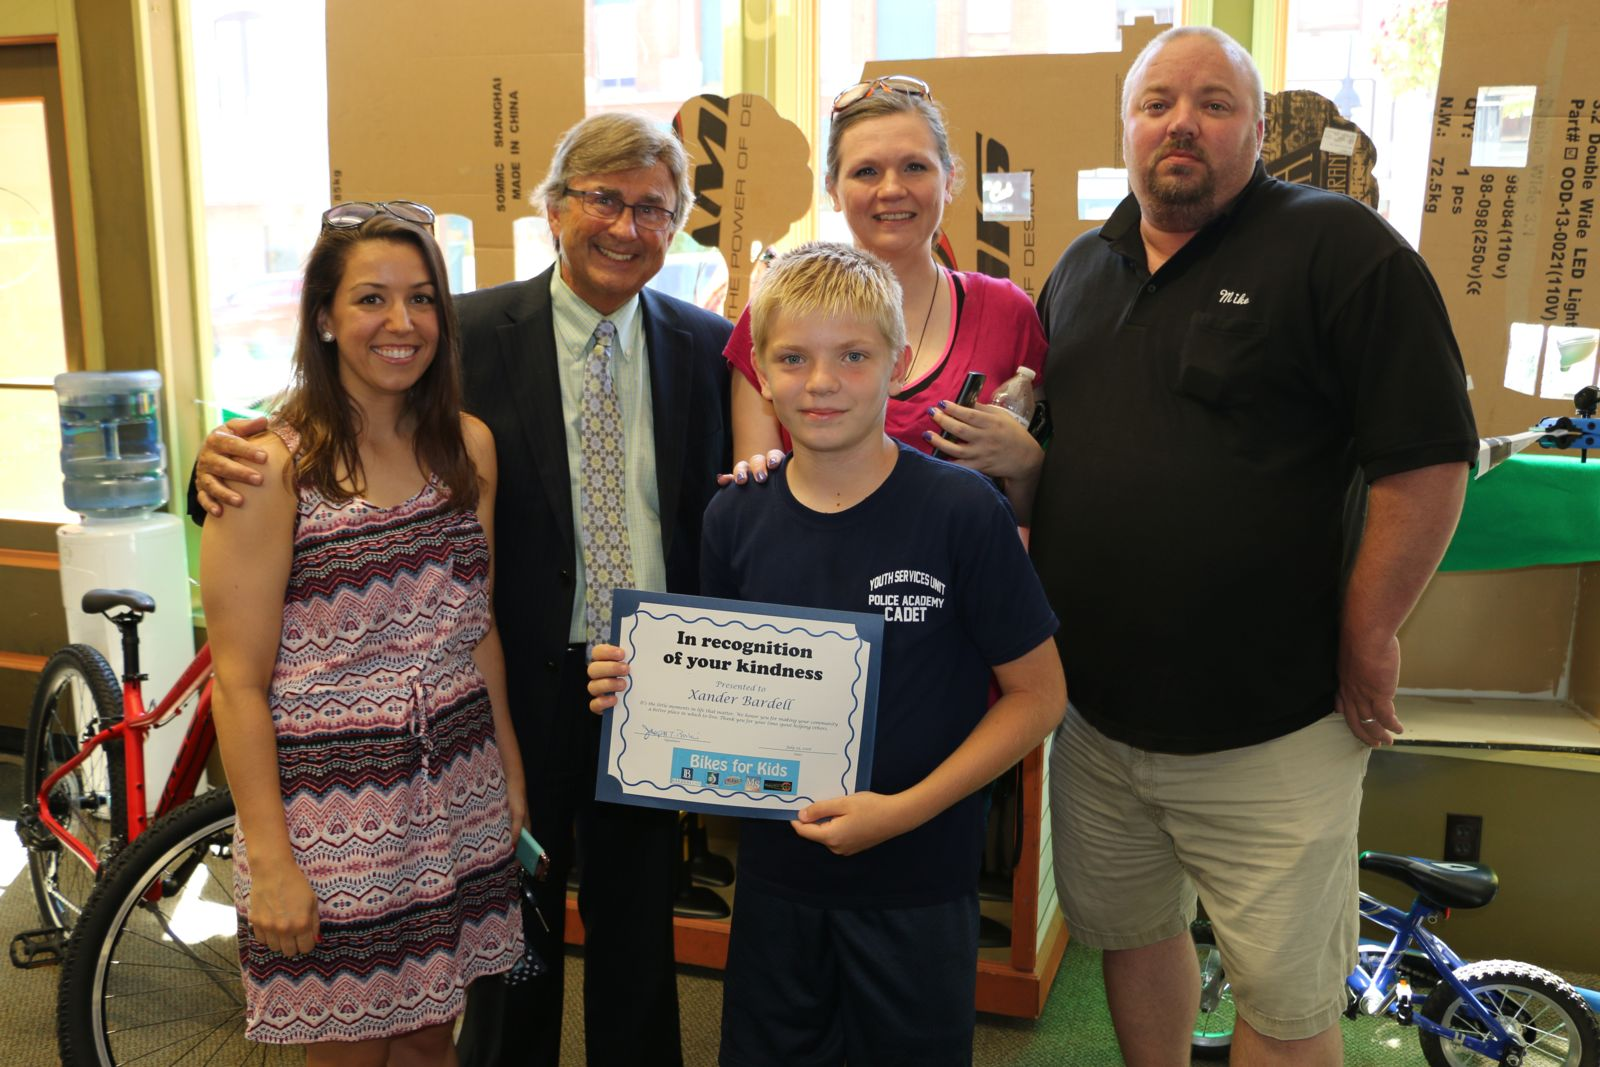 Rachel Jaksa, Joe Barberi, Xander Bardell, and family - Bikes for Kids winner 2016